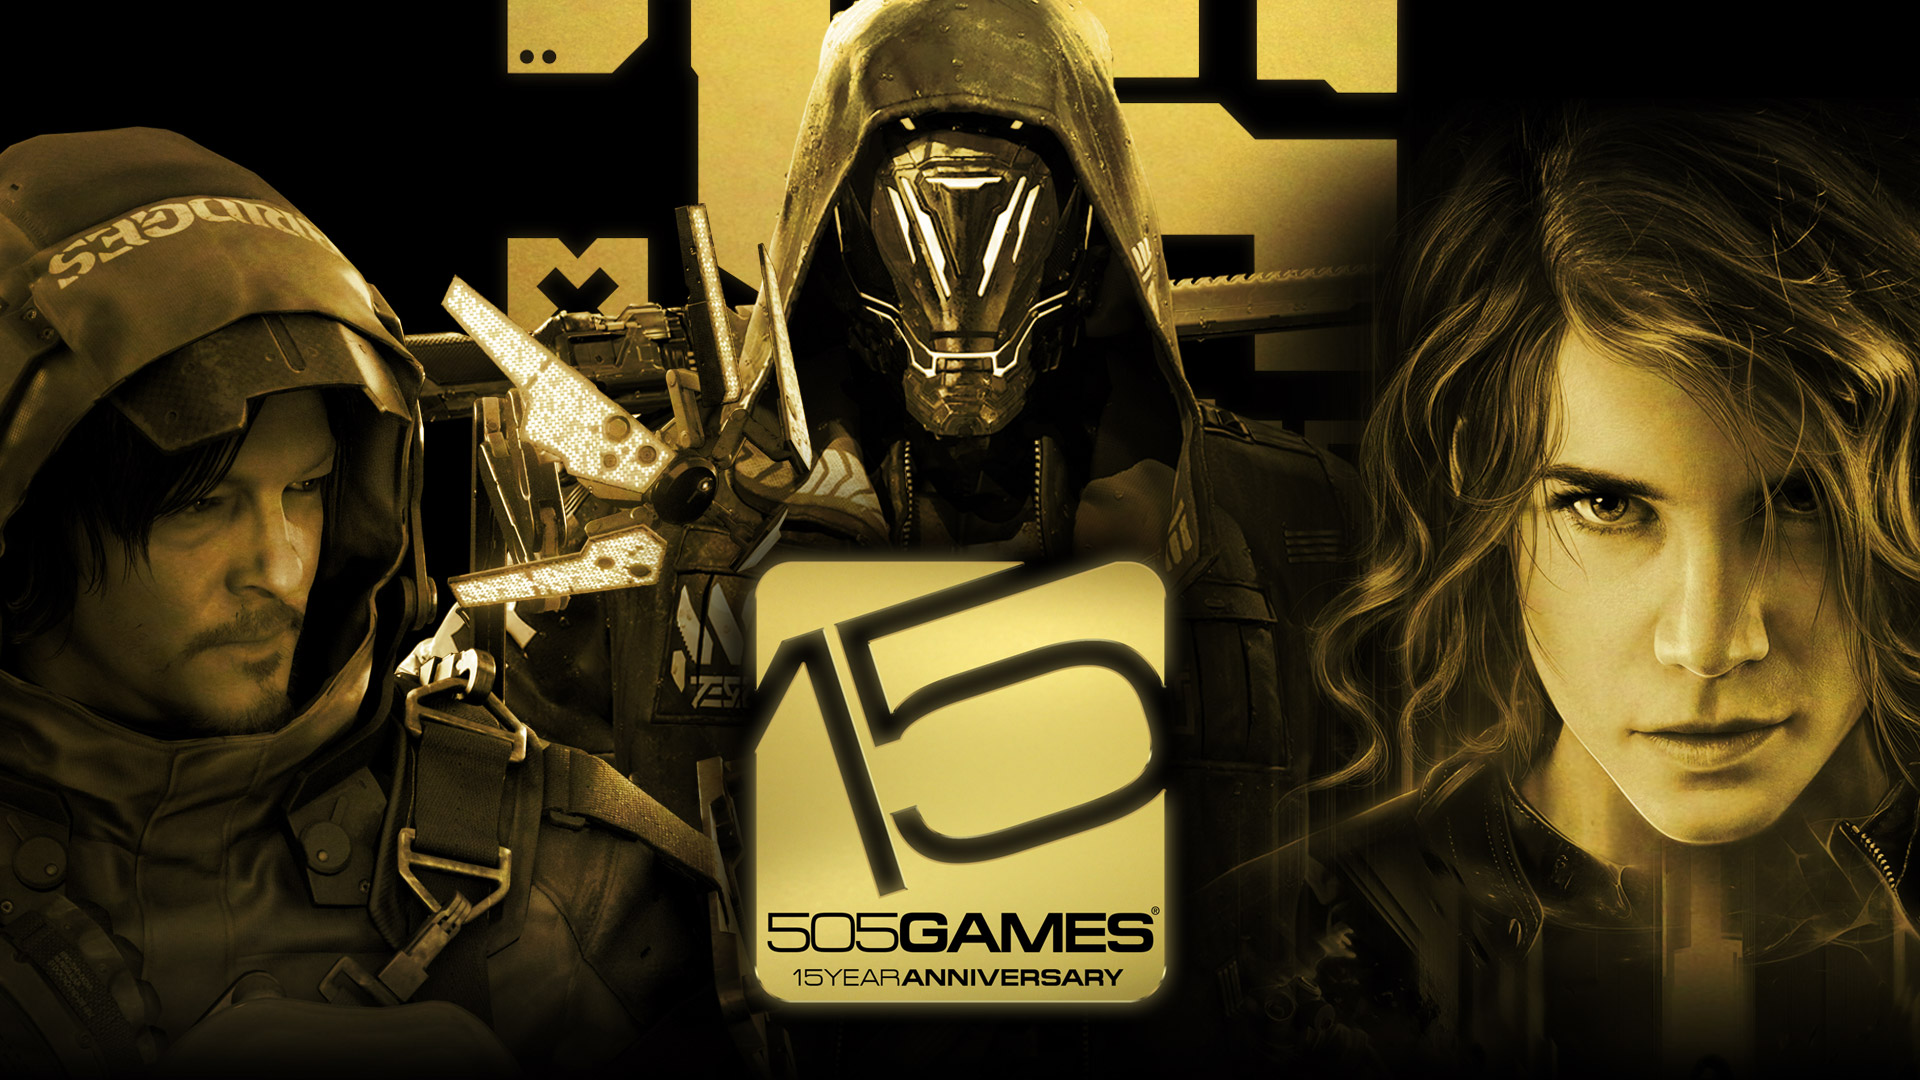 505 games is celebrating their 15th Anniversary With Big Sales!